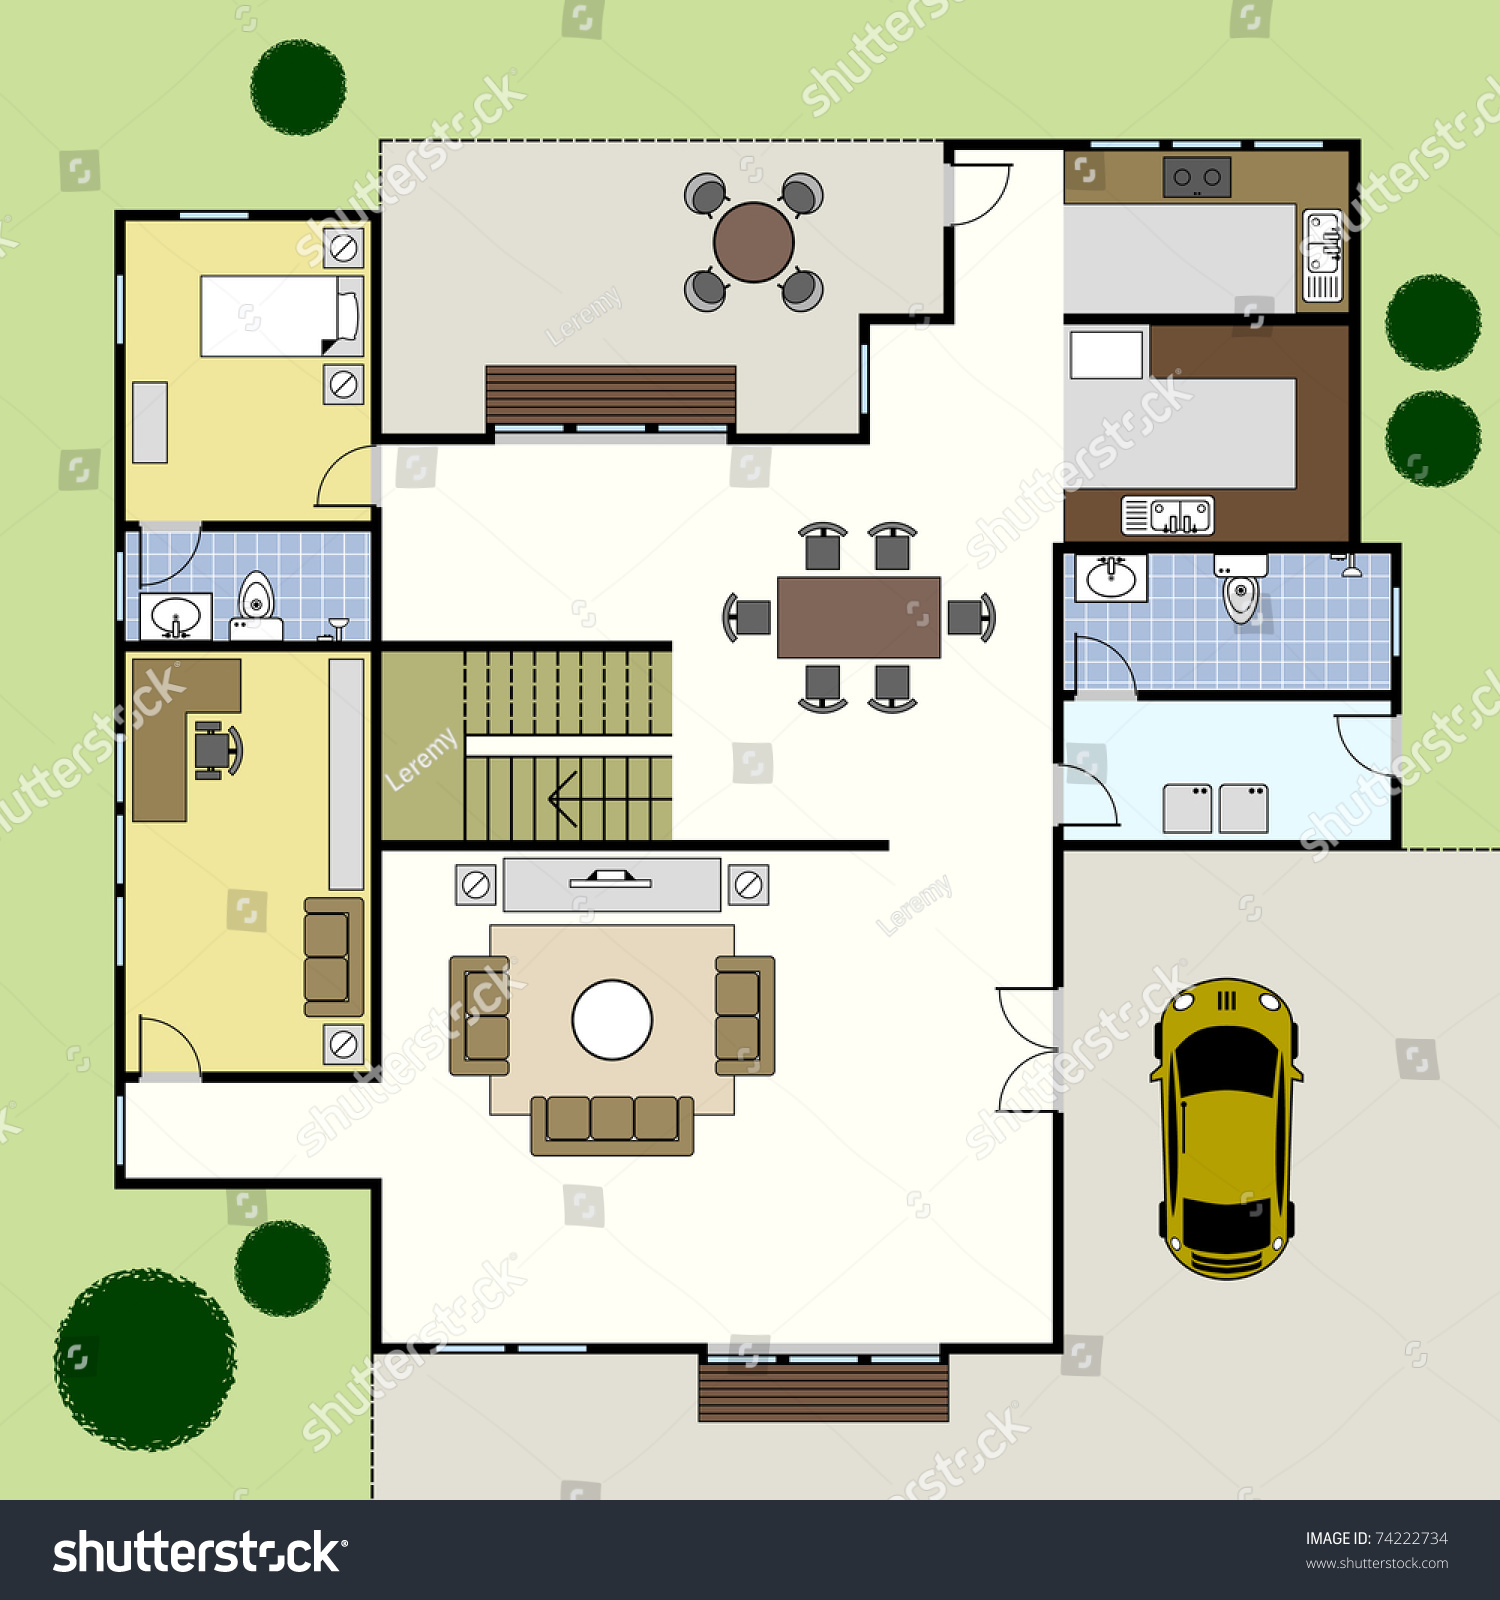 Ground Floor Plan Floorplan House Home Stock Vector 74222734 ... - ^